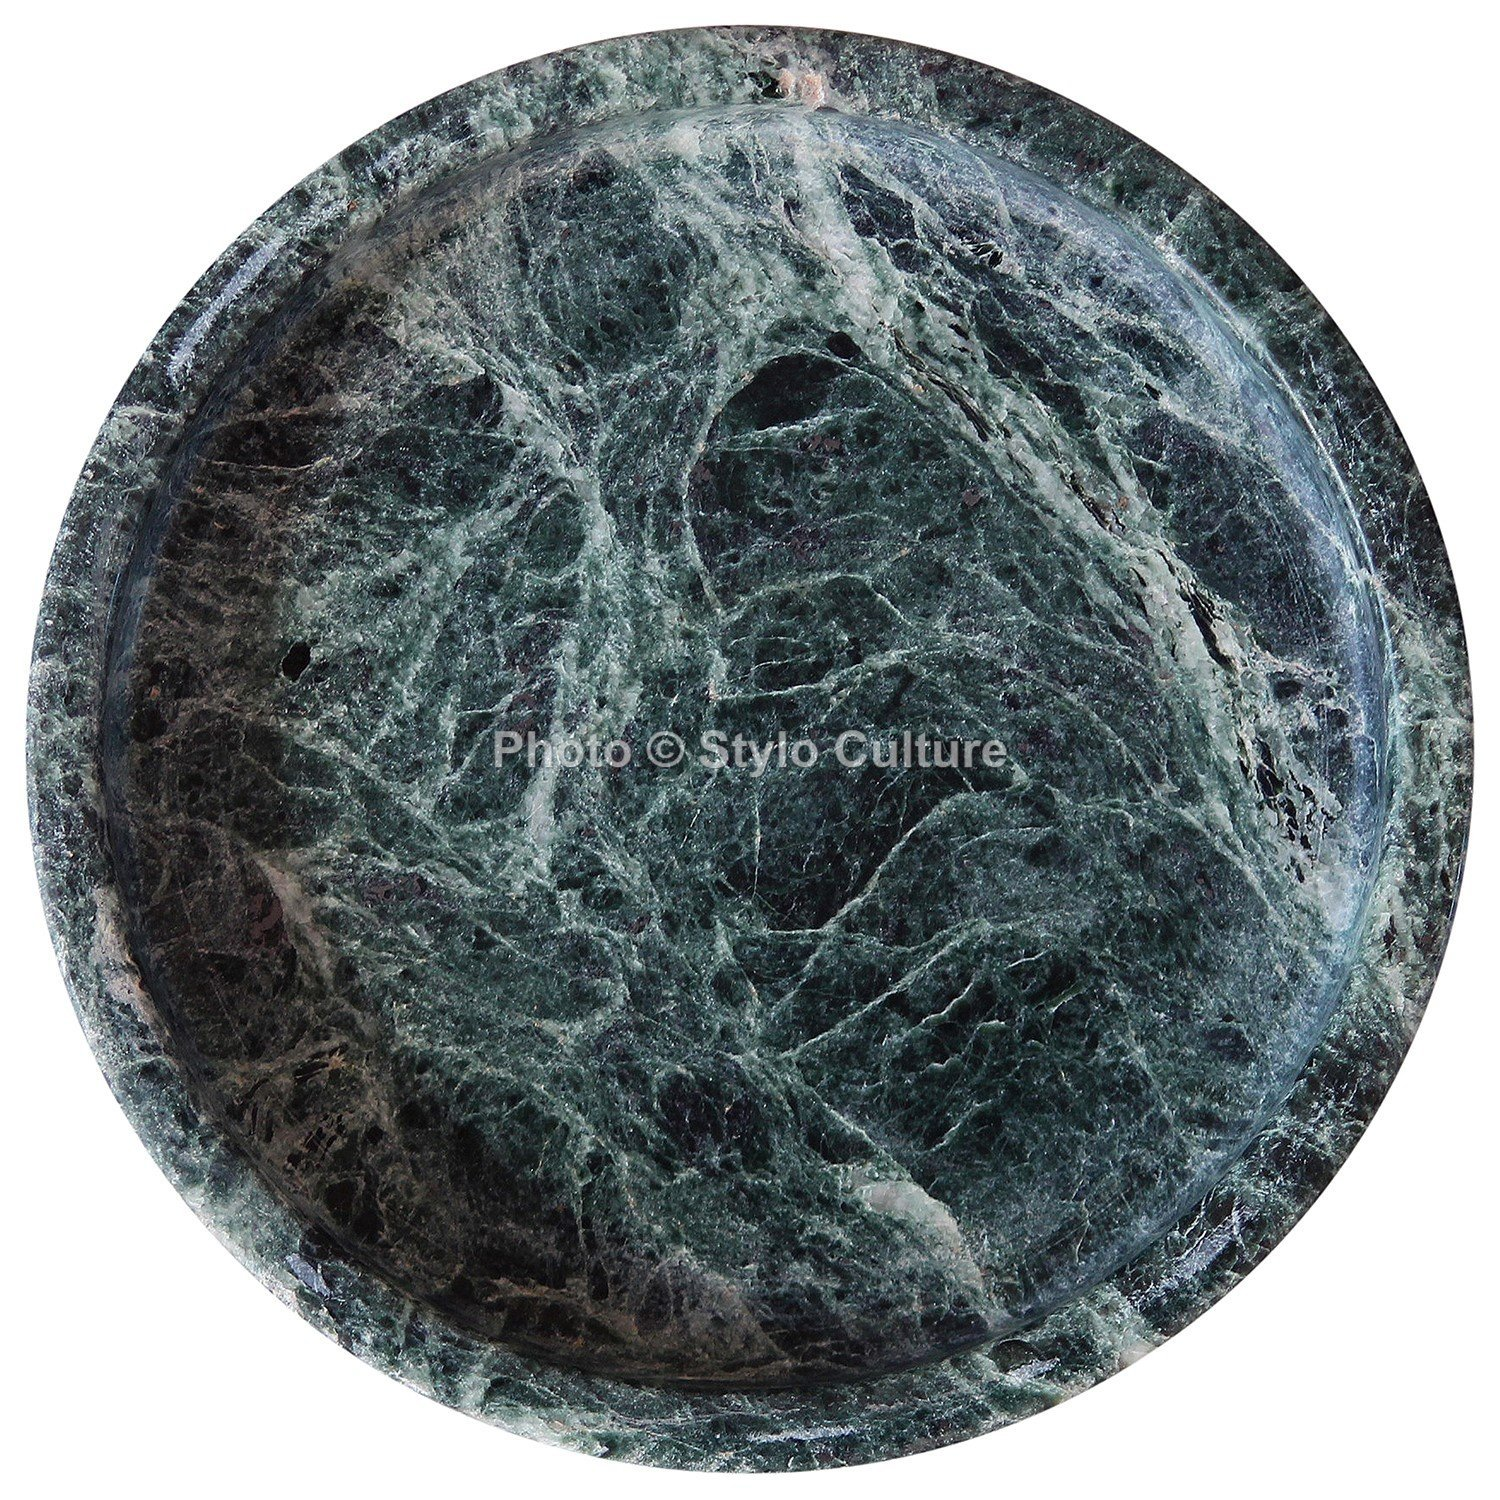 Stylo Culture Indian Unjoined Green Marble Round Tray For Bathroom Coffee Table Tray Scented Candle Base Handmade Gift Perfume Tray Soap Bar Marble Vanity Bathroom Tray (2.5x14.5 cm) By